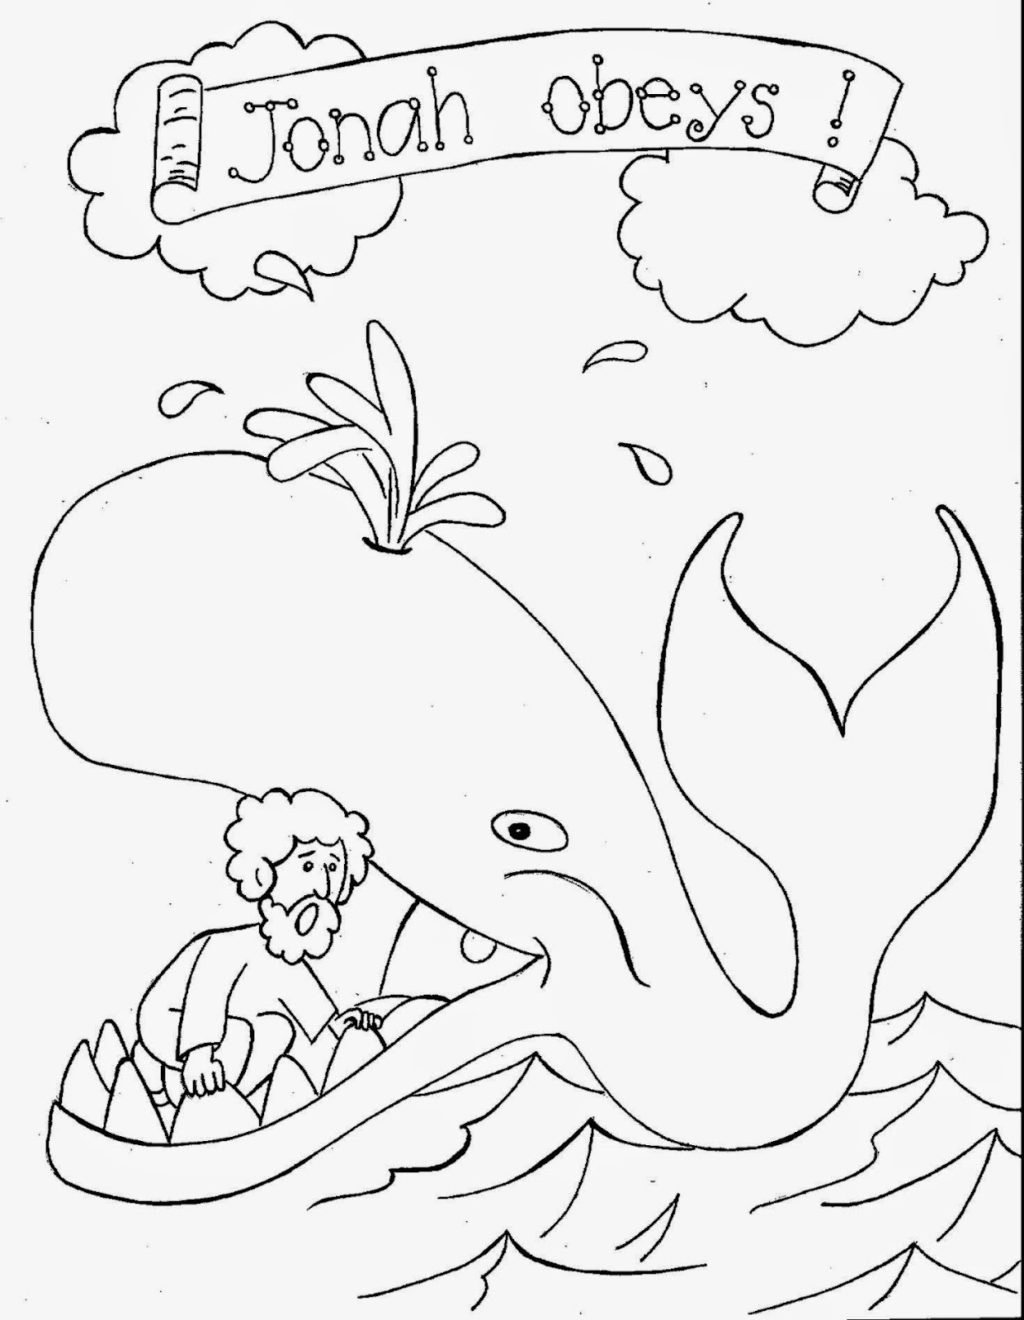 Coloring Book World ~ Coloring Ideas Freerintable Sundayoolages - Free Printable Sunday School Coloring Pages